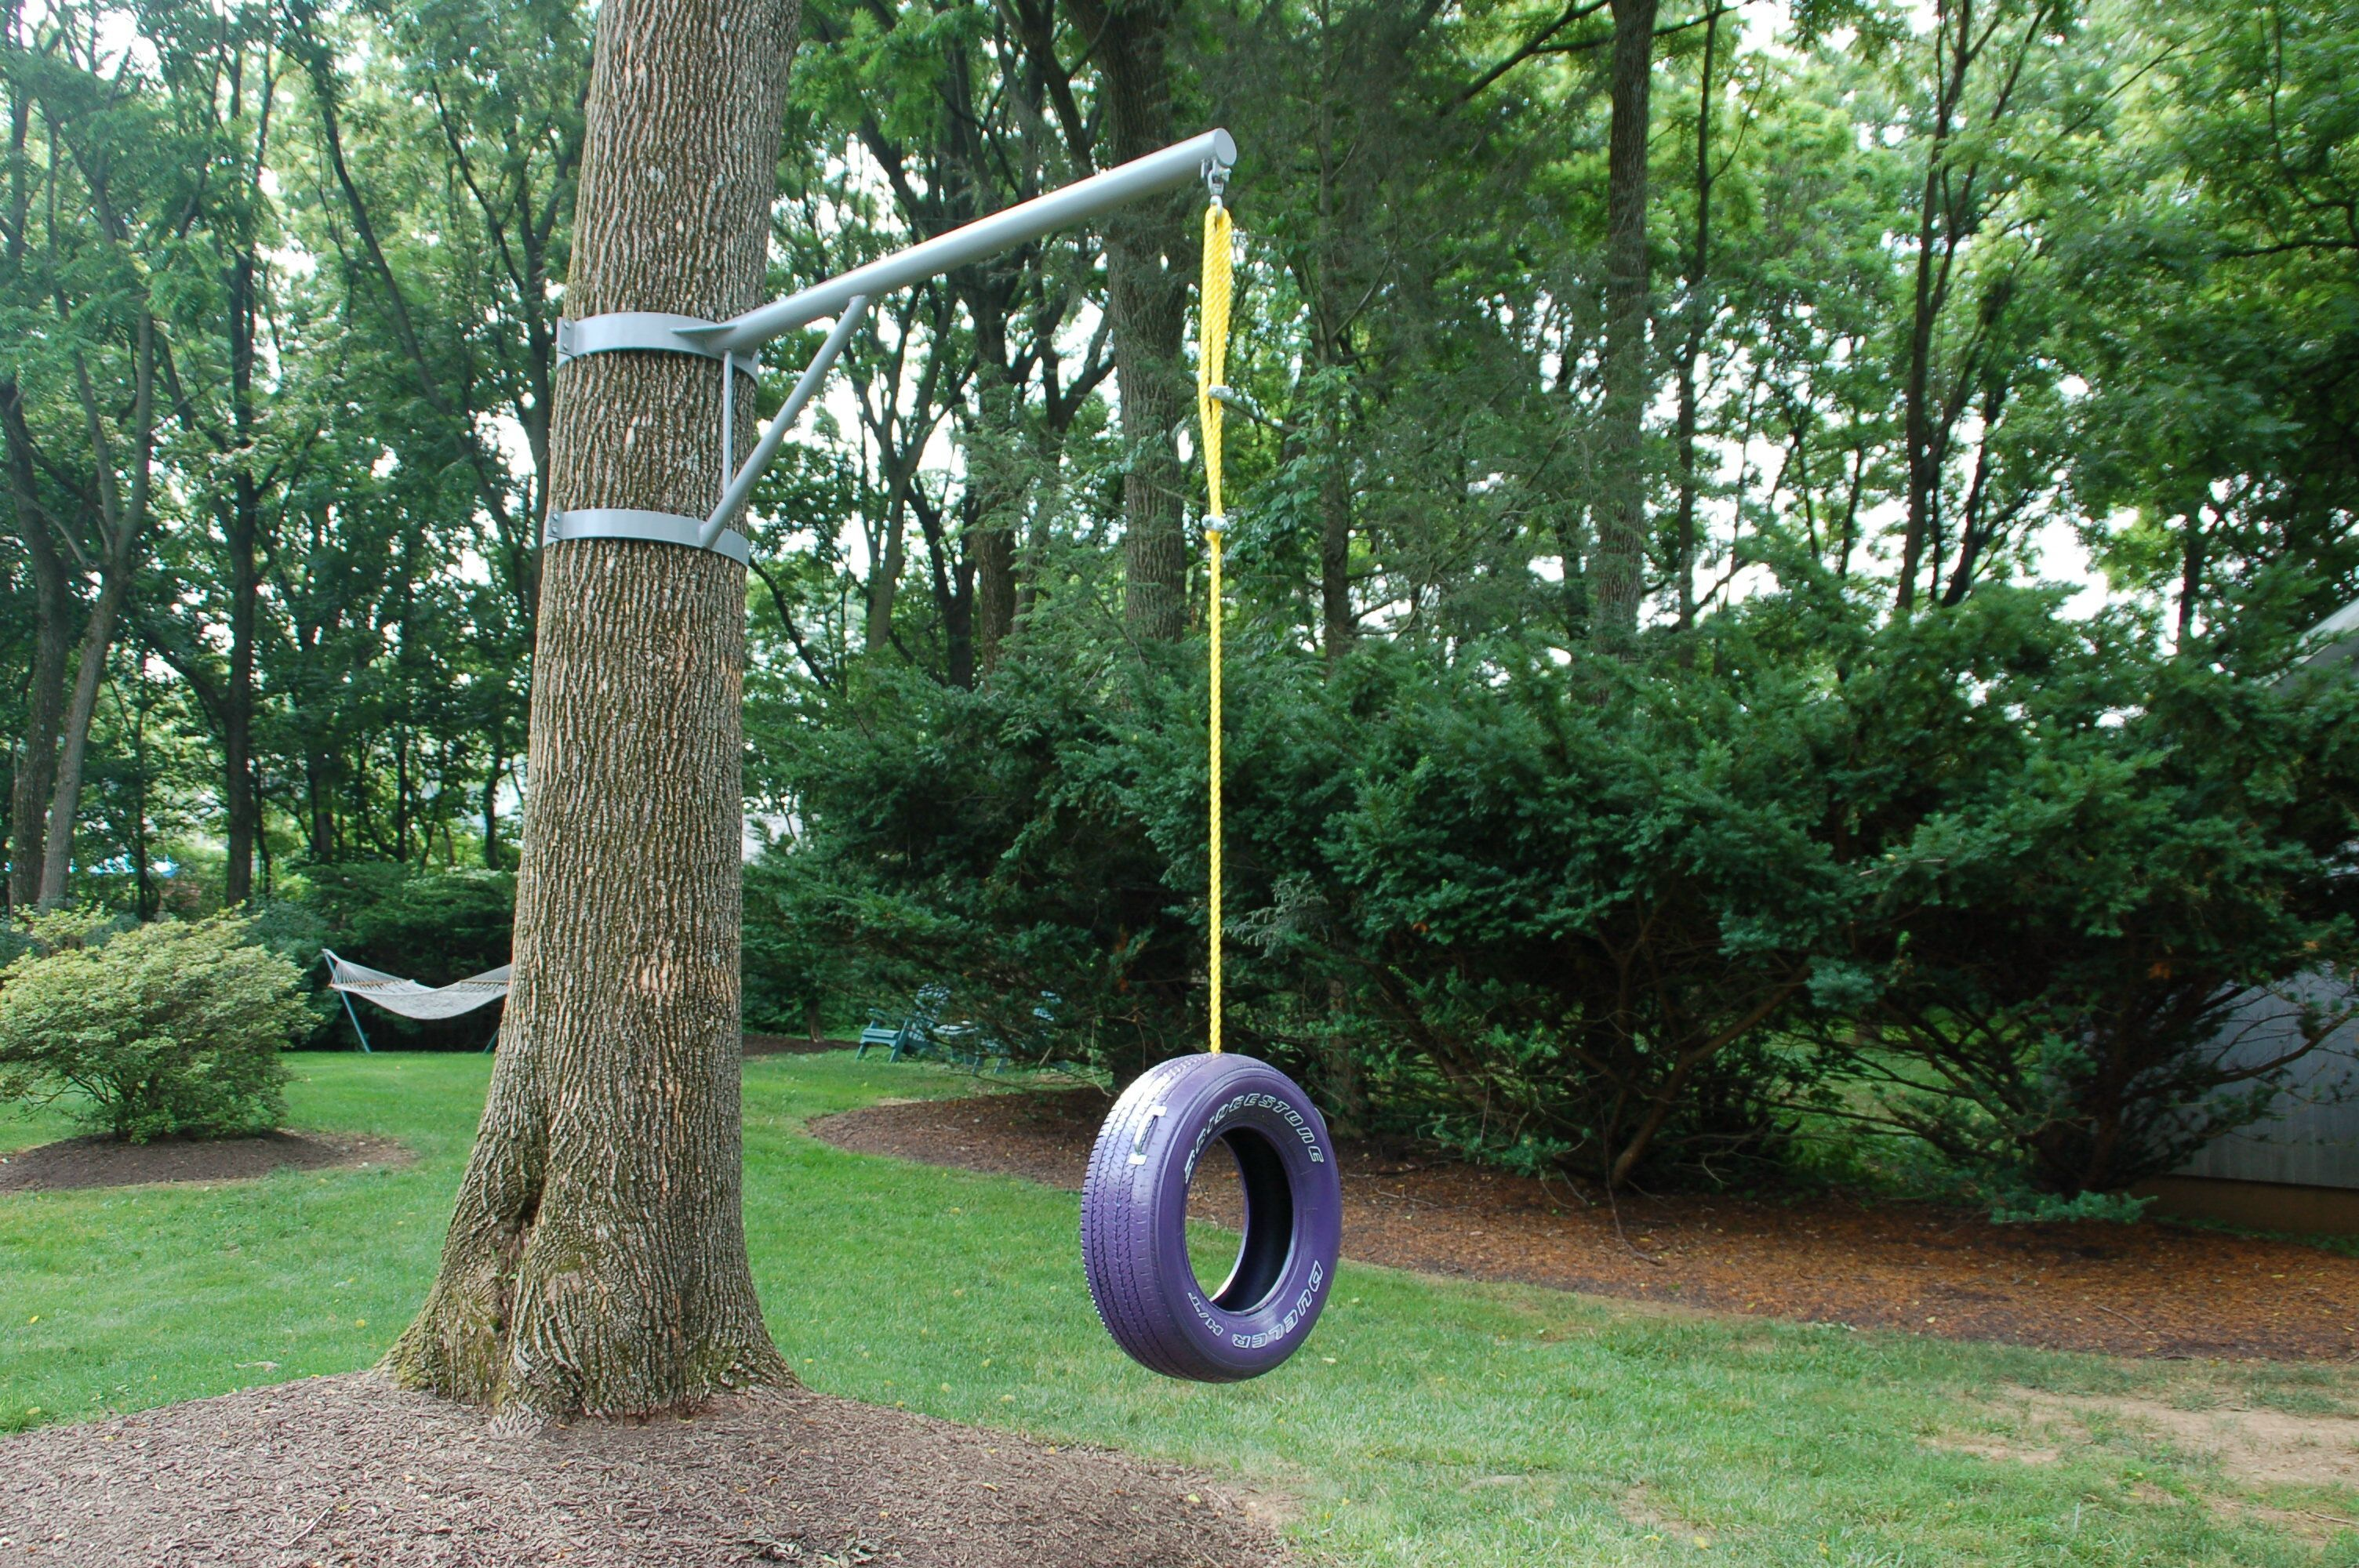 How to build a tree swing - No Branch Tree Swing Google Search